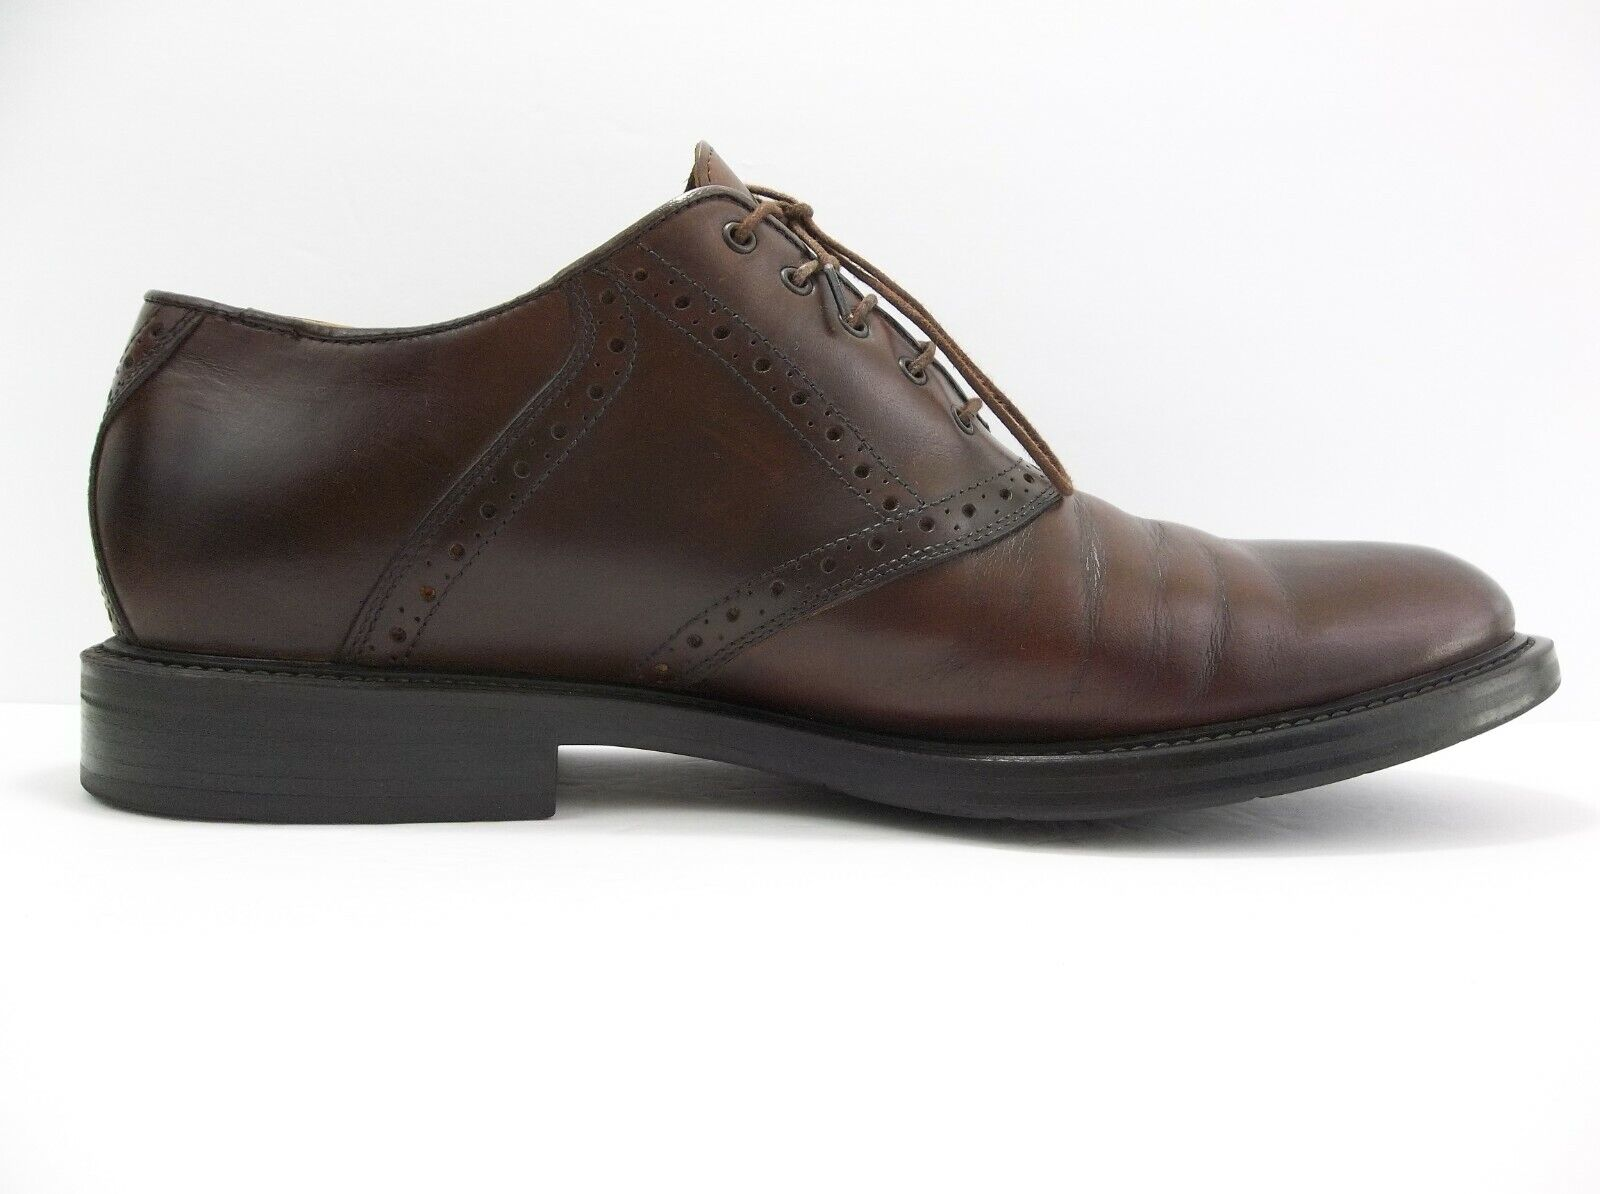 Johnston & Murphy Men's Shoes Brown Brogue Oxford Leather Dress Size 11 Italy